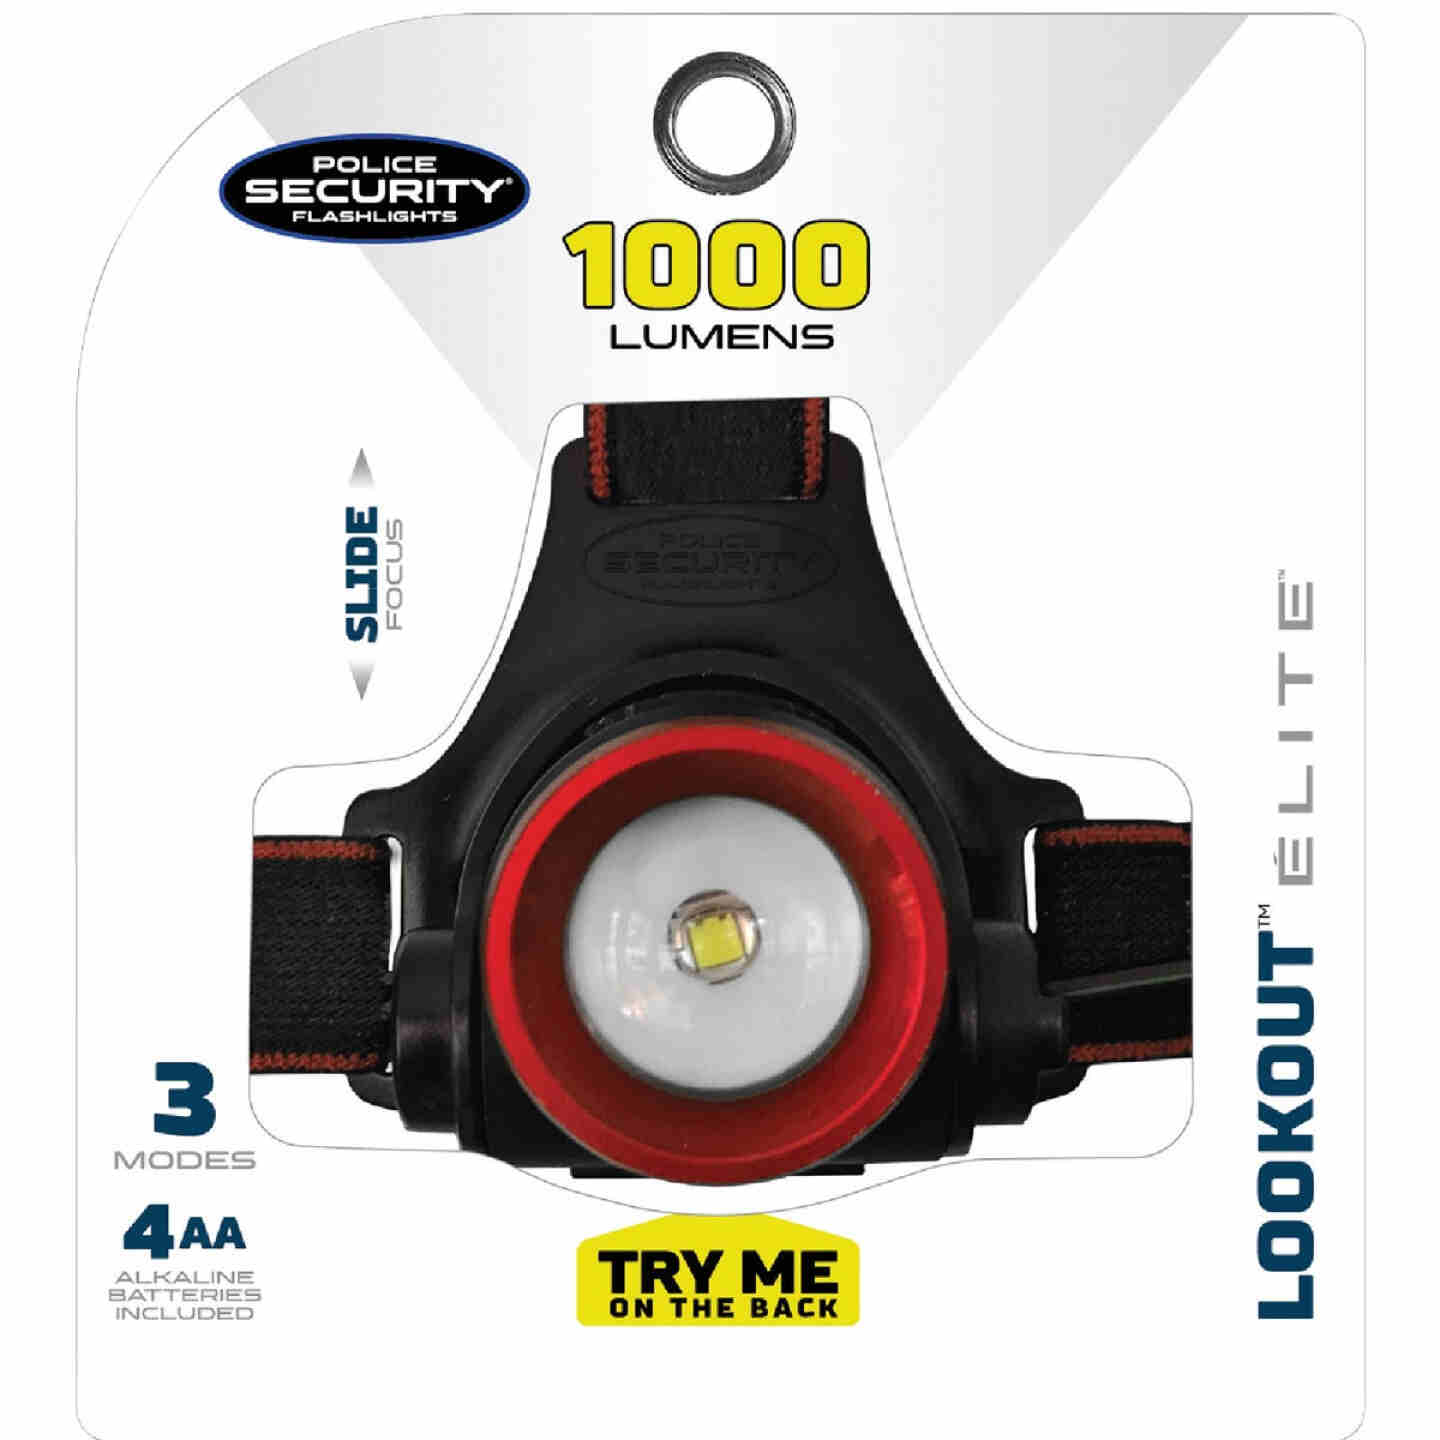 Police Security Lookout 1000 Lm. LED AA Headlamp Image 3